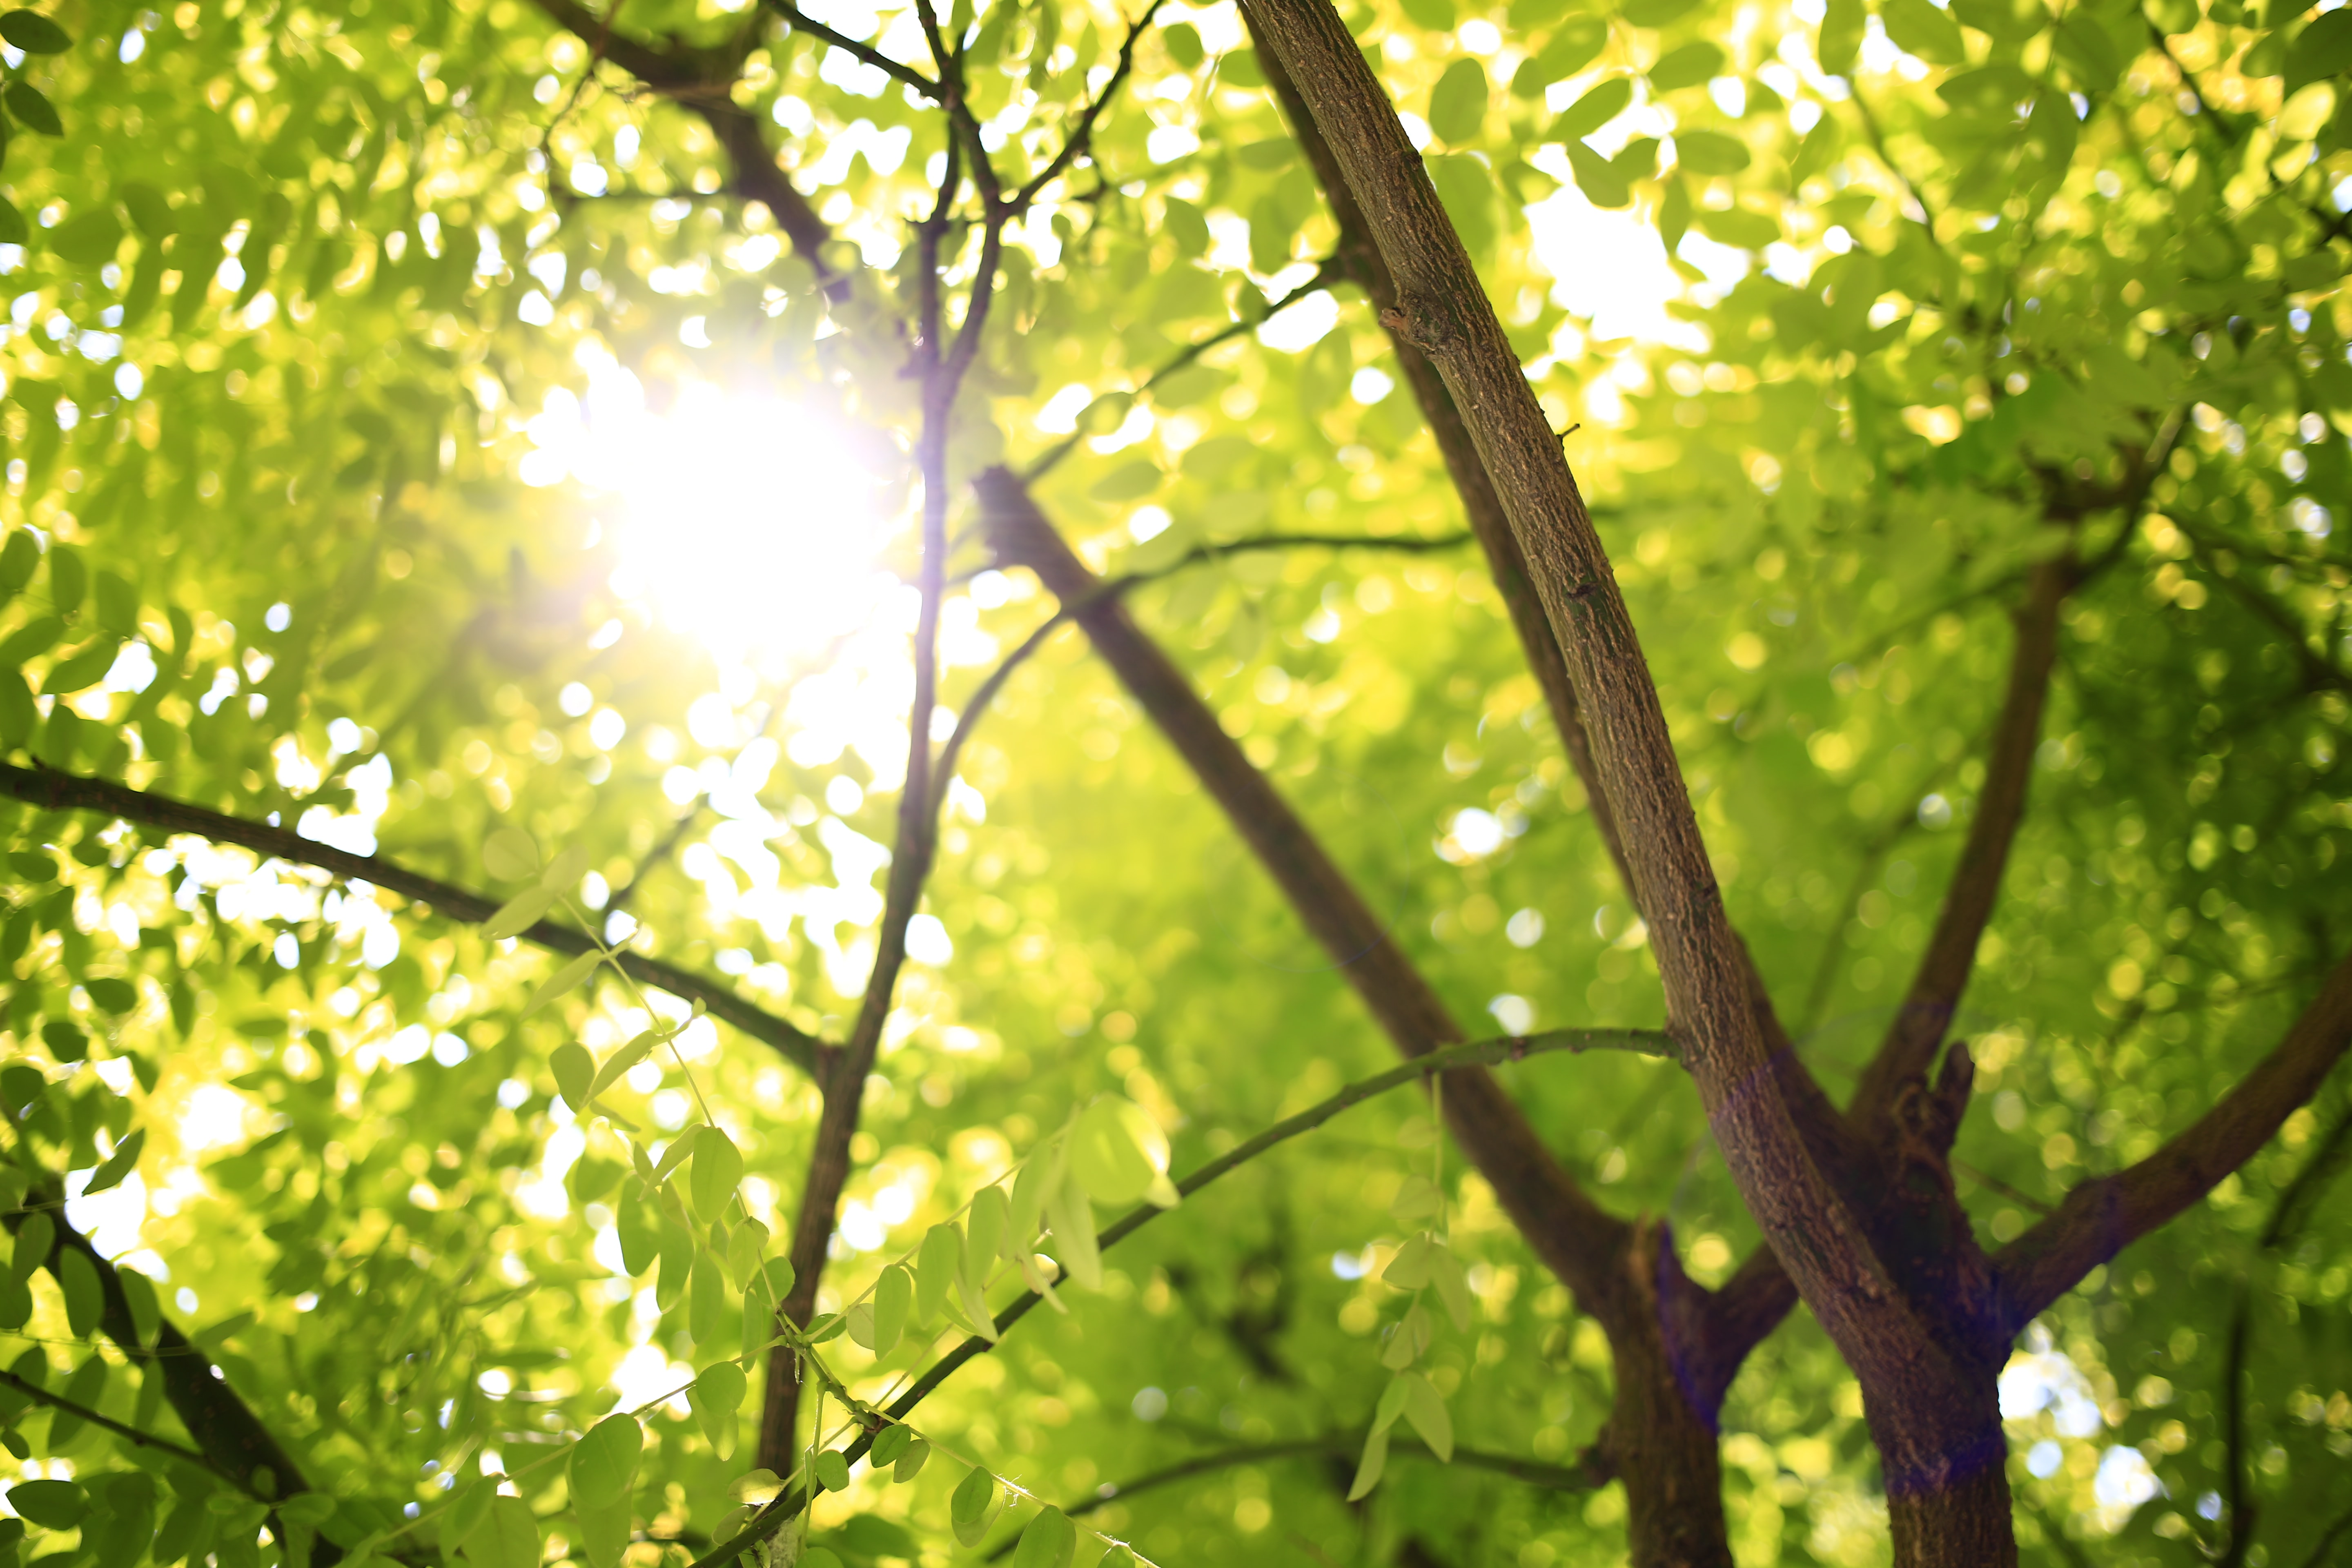 A close-up of a tree and its leaves with the sun leaking through